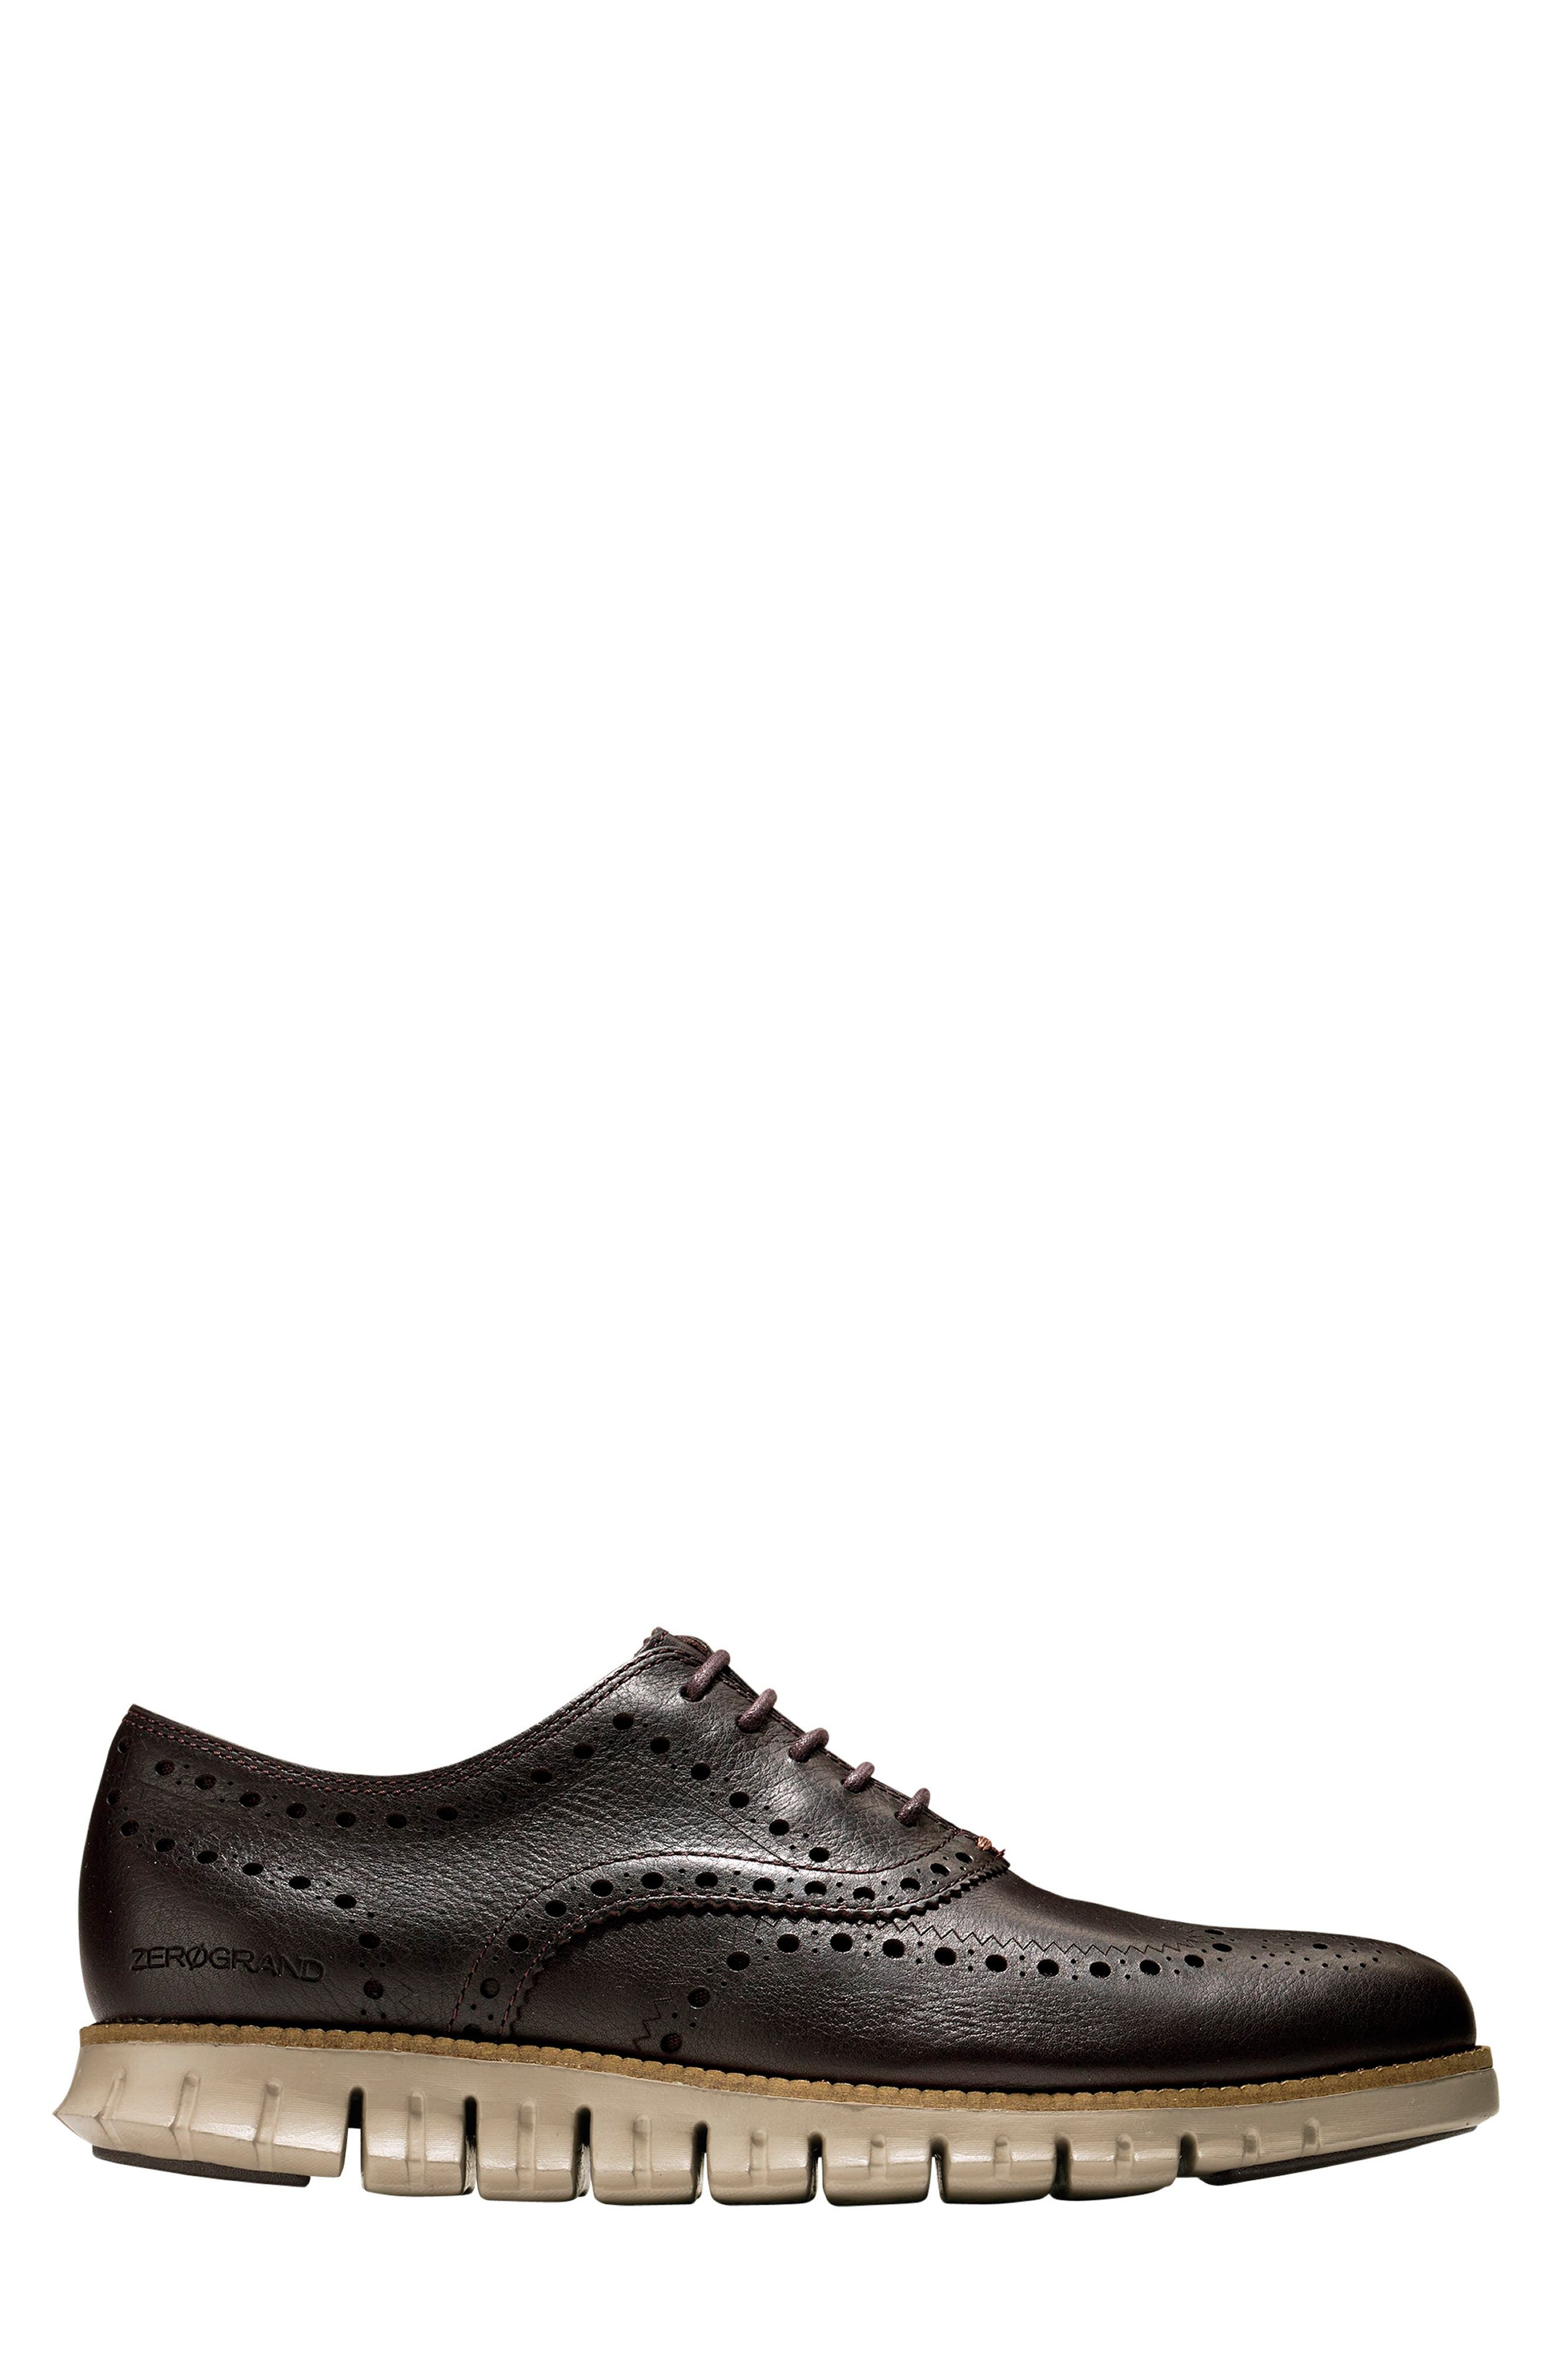 COLE HAAN, 'ZeroGrand' Wingtip Oxford, Alternate thumbnail 3, color, JAVA LEATHER